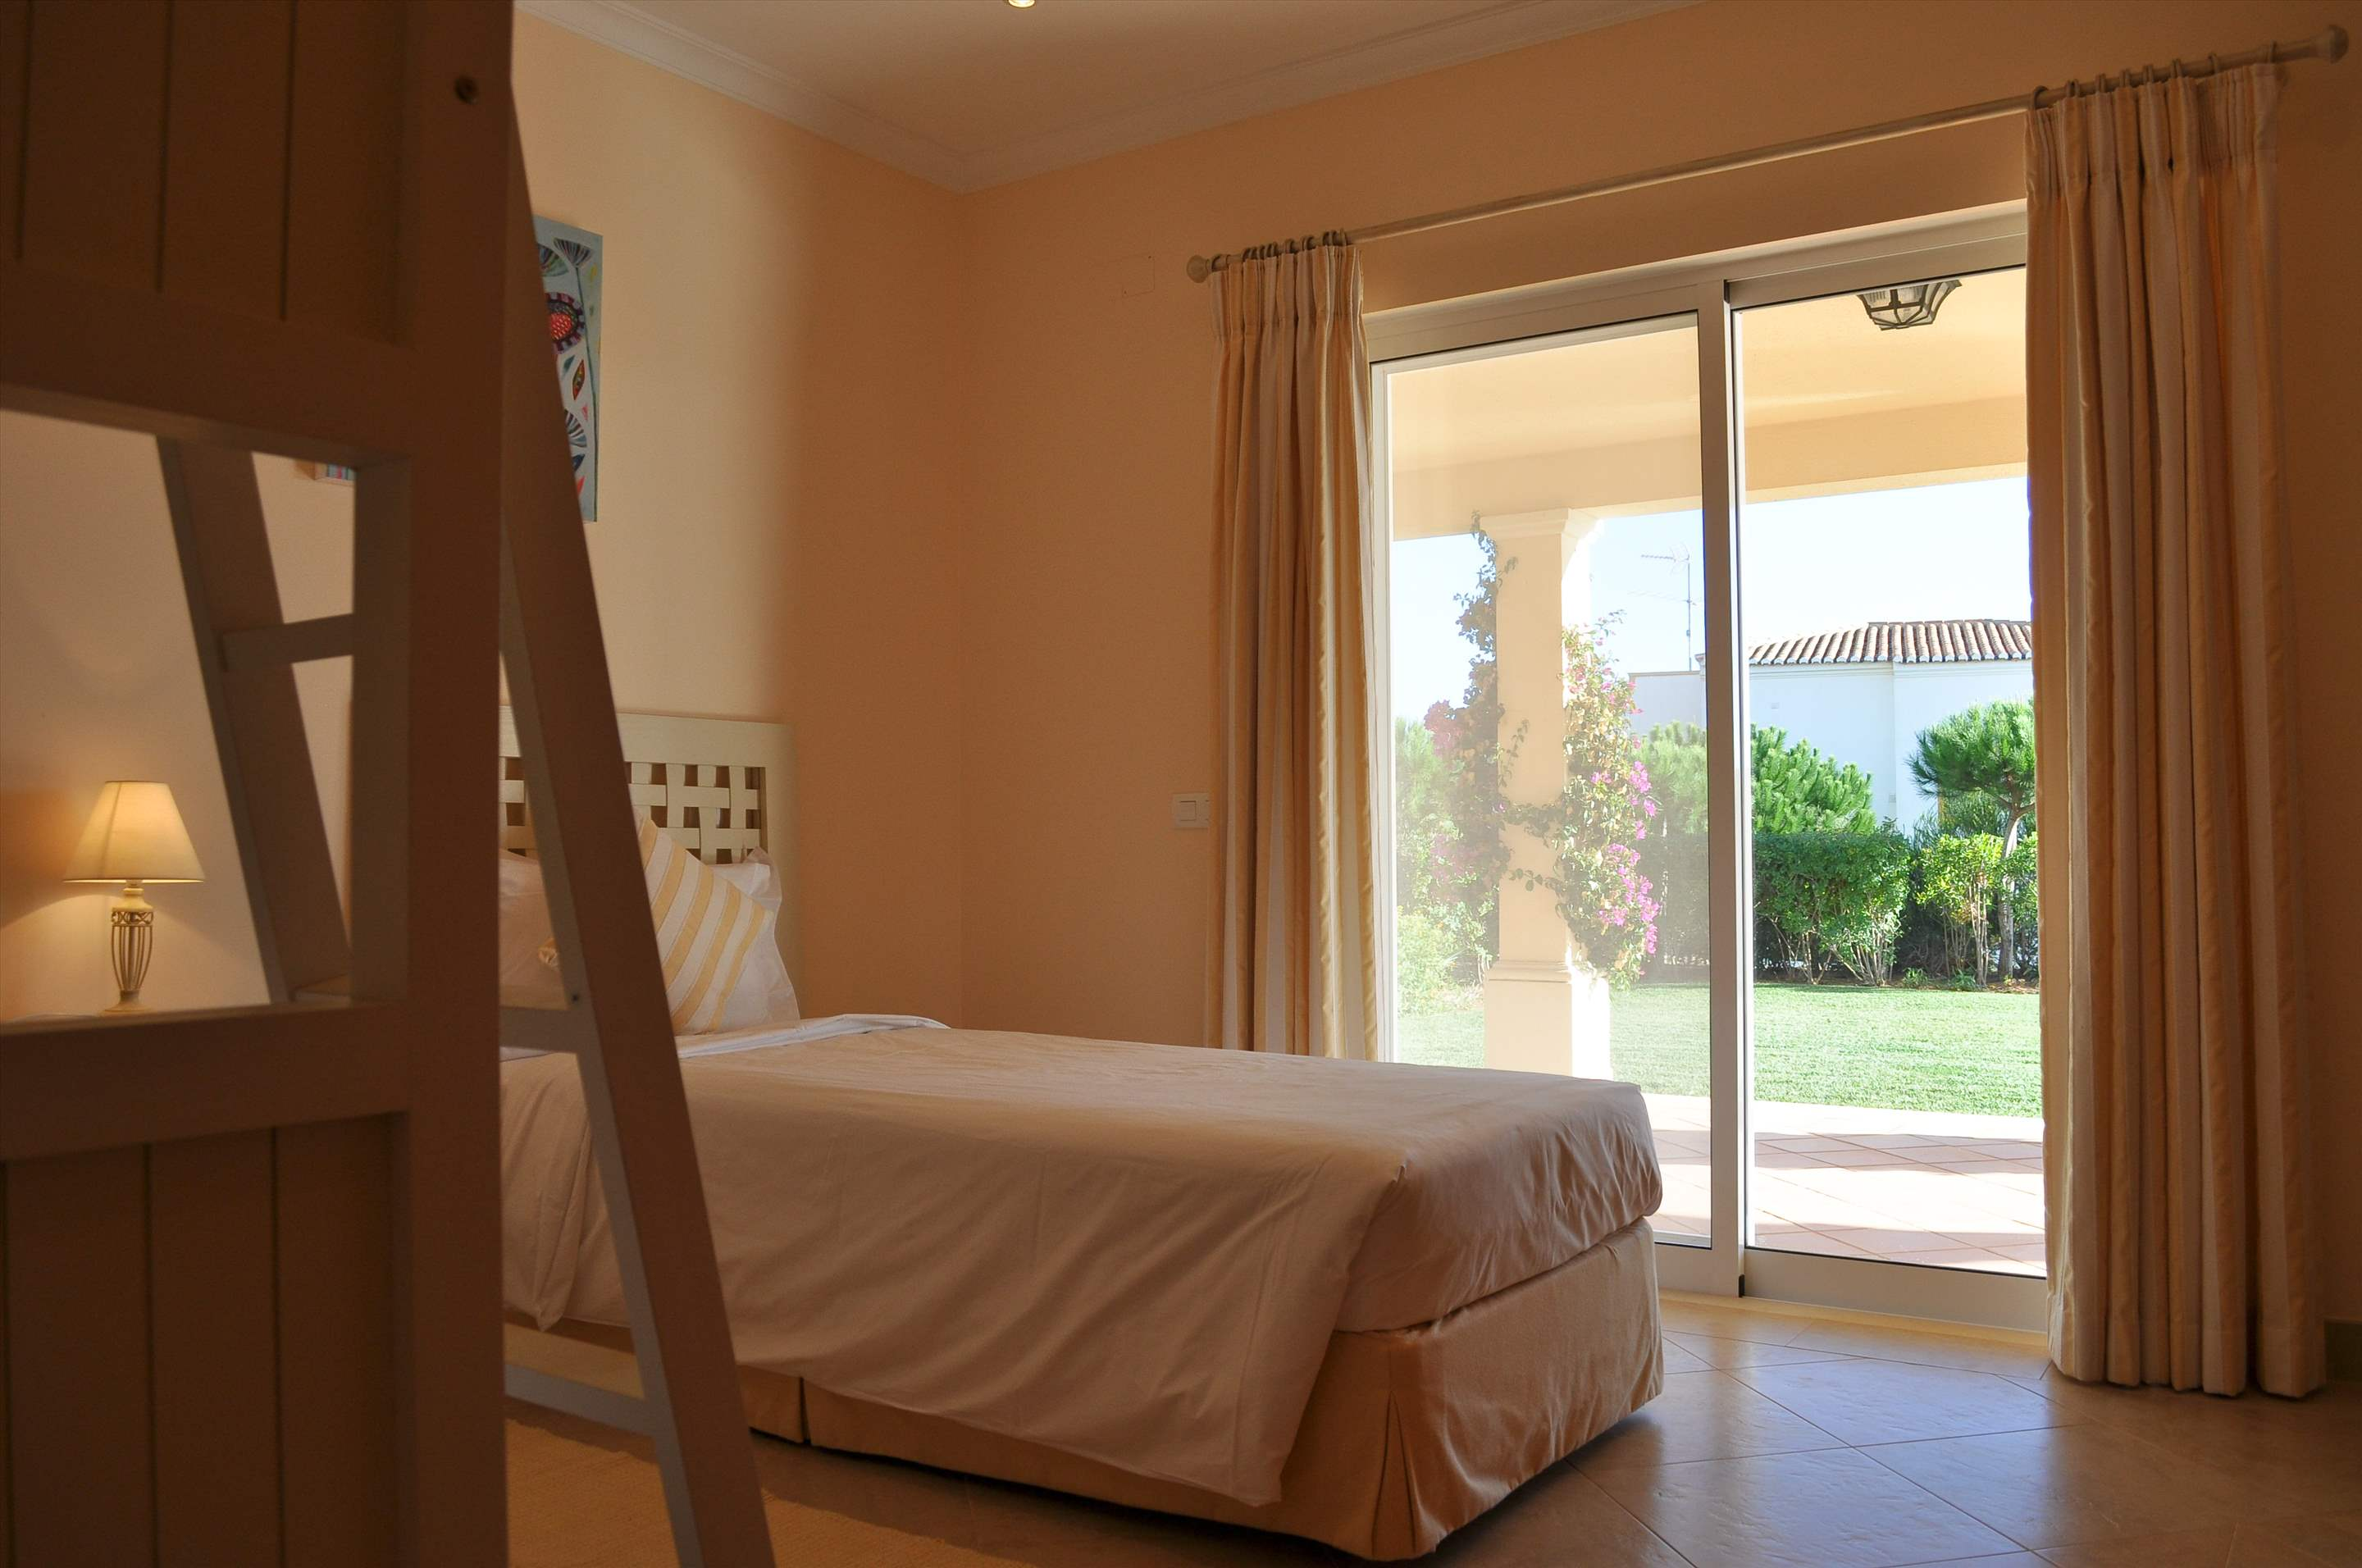 Martinhal Luxury Villa No.32, Three bedroom villa, 3 bedroom villa in Martinhal Sagres, Algarve Photo #15